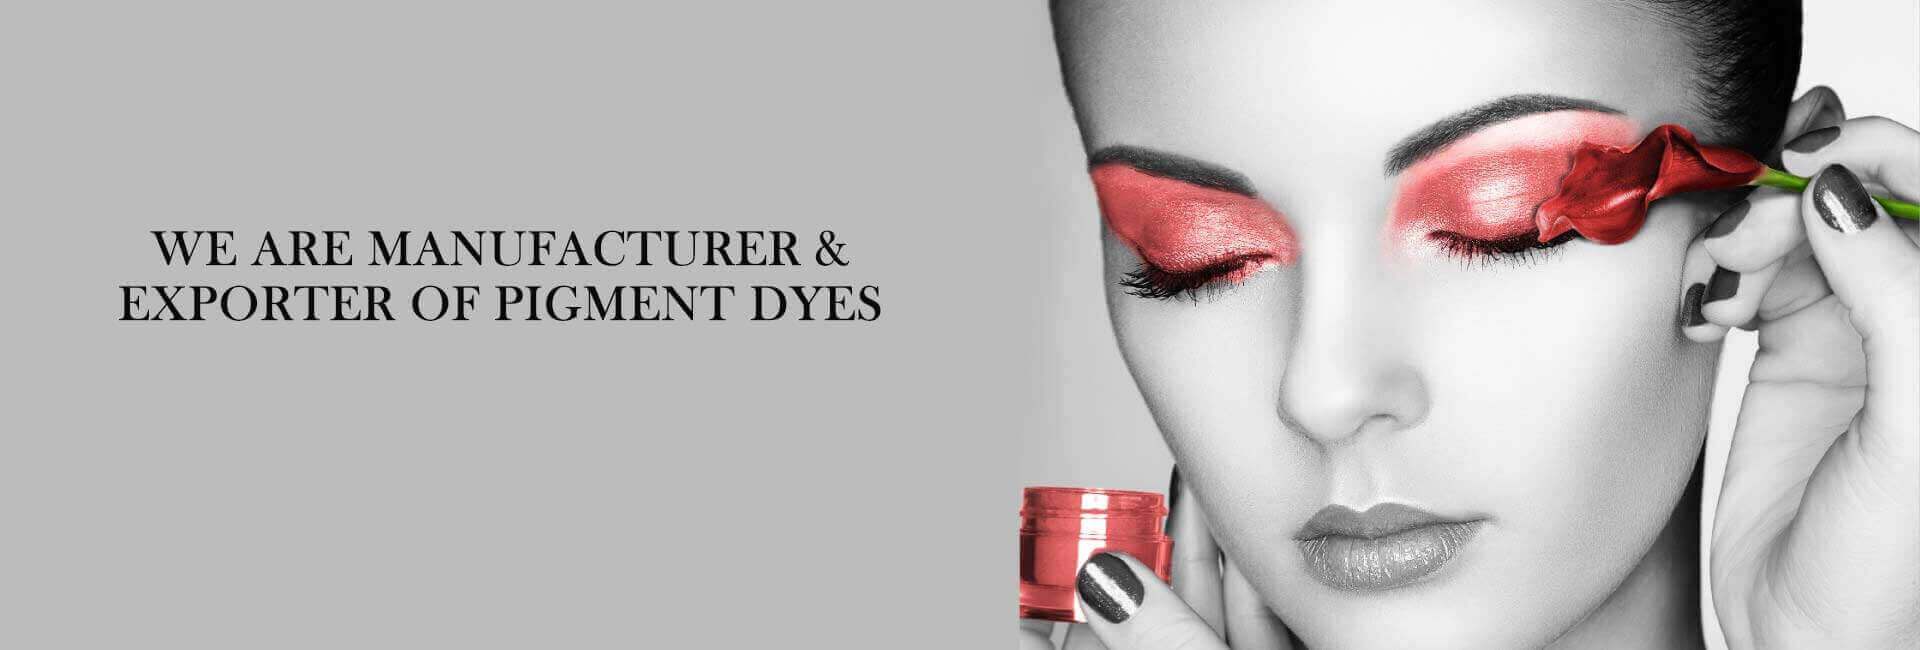 Manufacturer and Exporter of Pigments Dyes in Ahmedabad